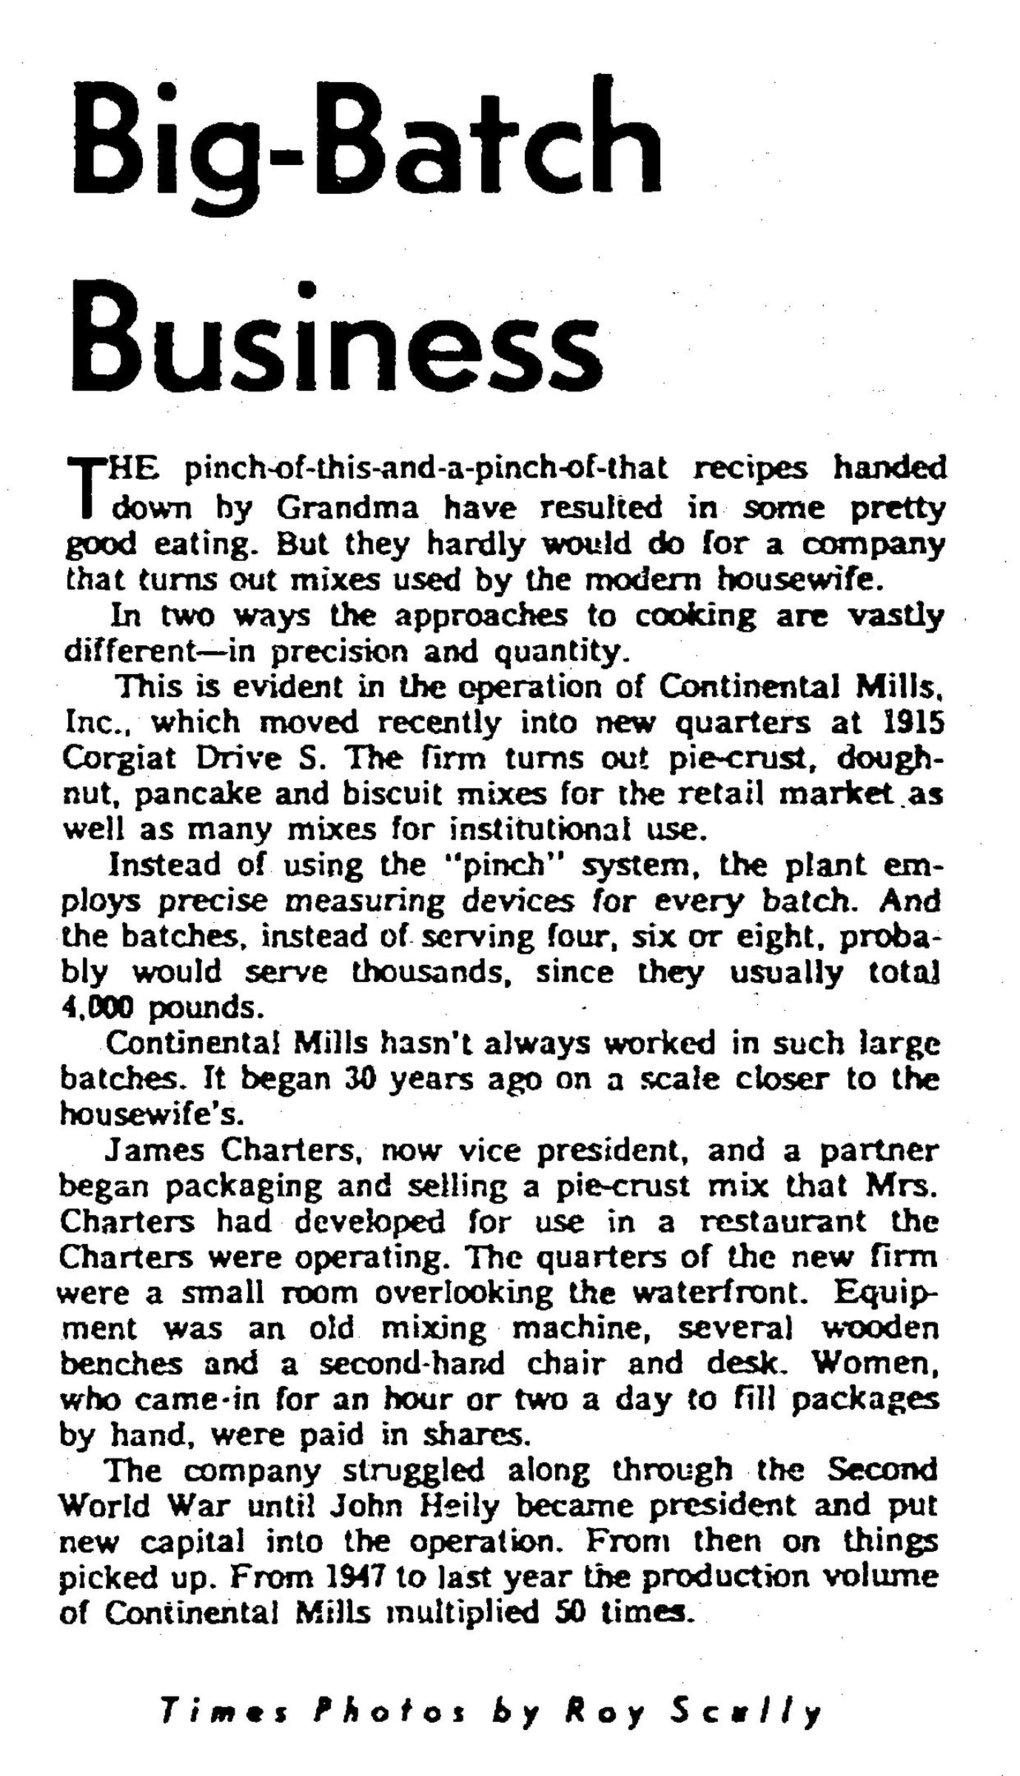 """Continental Mills was featured in a story in the Jan. 13, 1963, edition of The Seattle Times. The story references """"Mrs Charters"""" but never states her first name, which wasn't unusual for the time, and describes how Rose Charters' pie-crust mix was originally developed for use in a restaurant operated by the Charterses. (The Seattle Times archive)"""